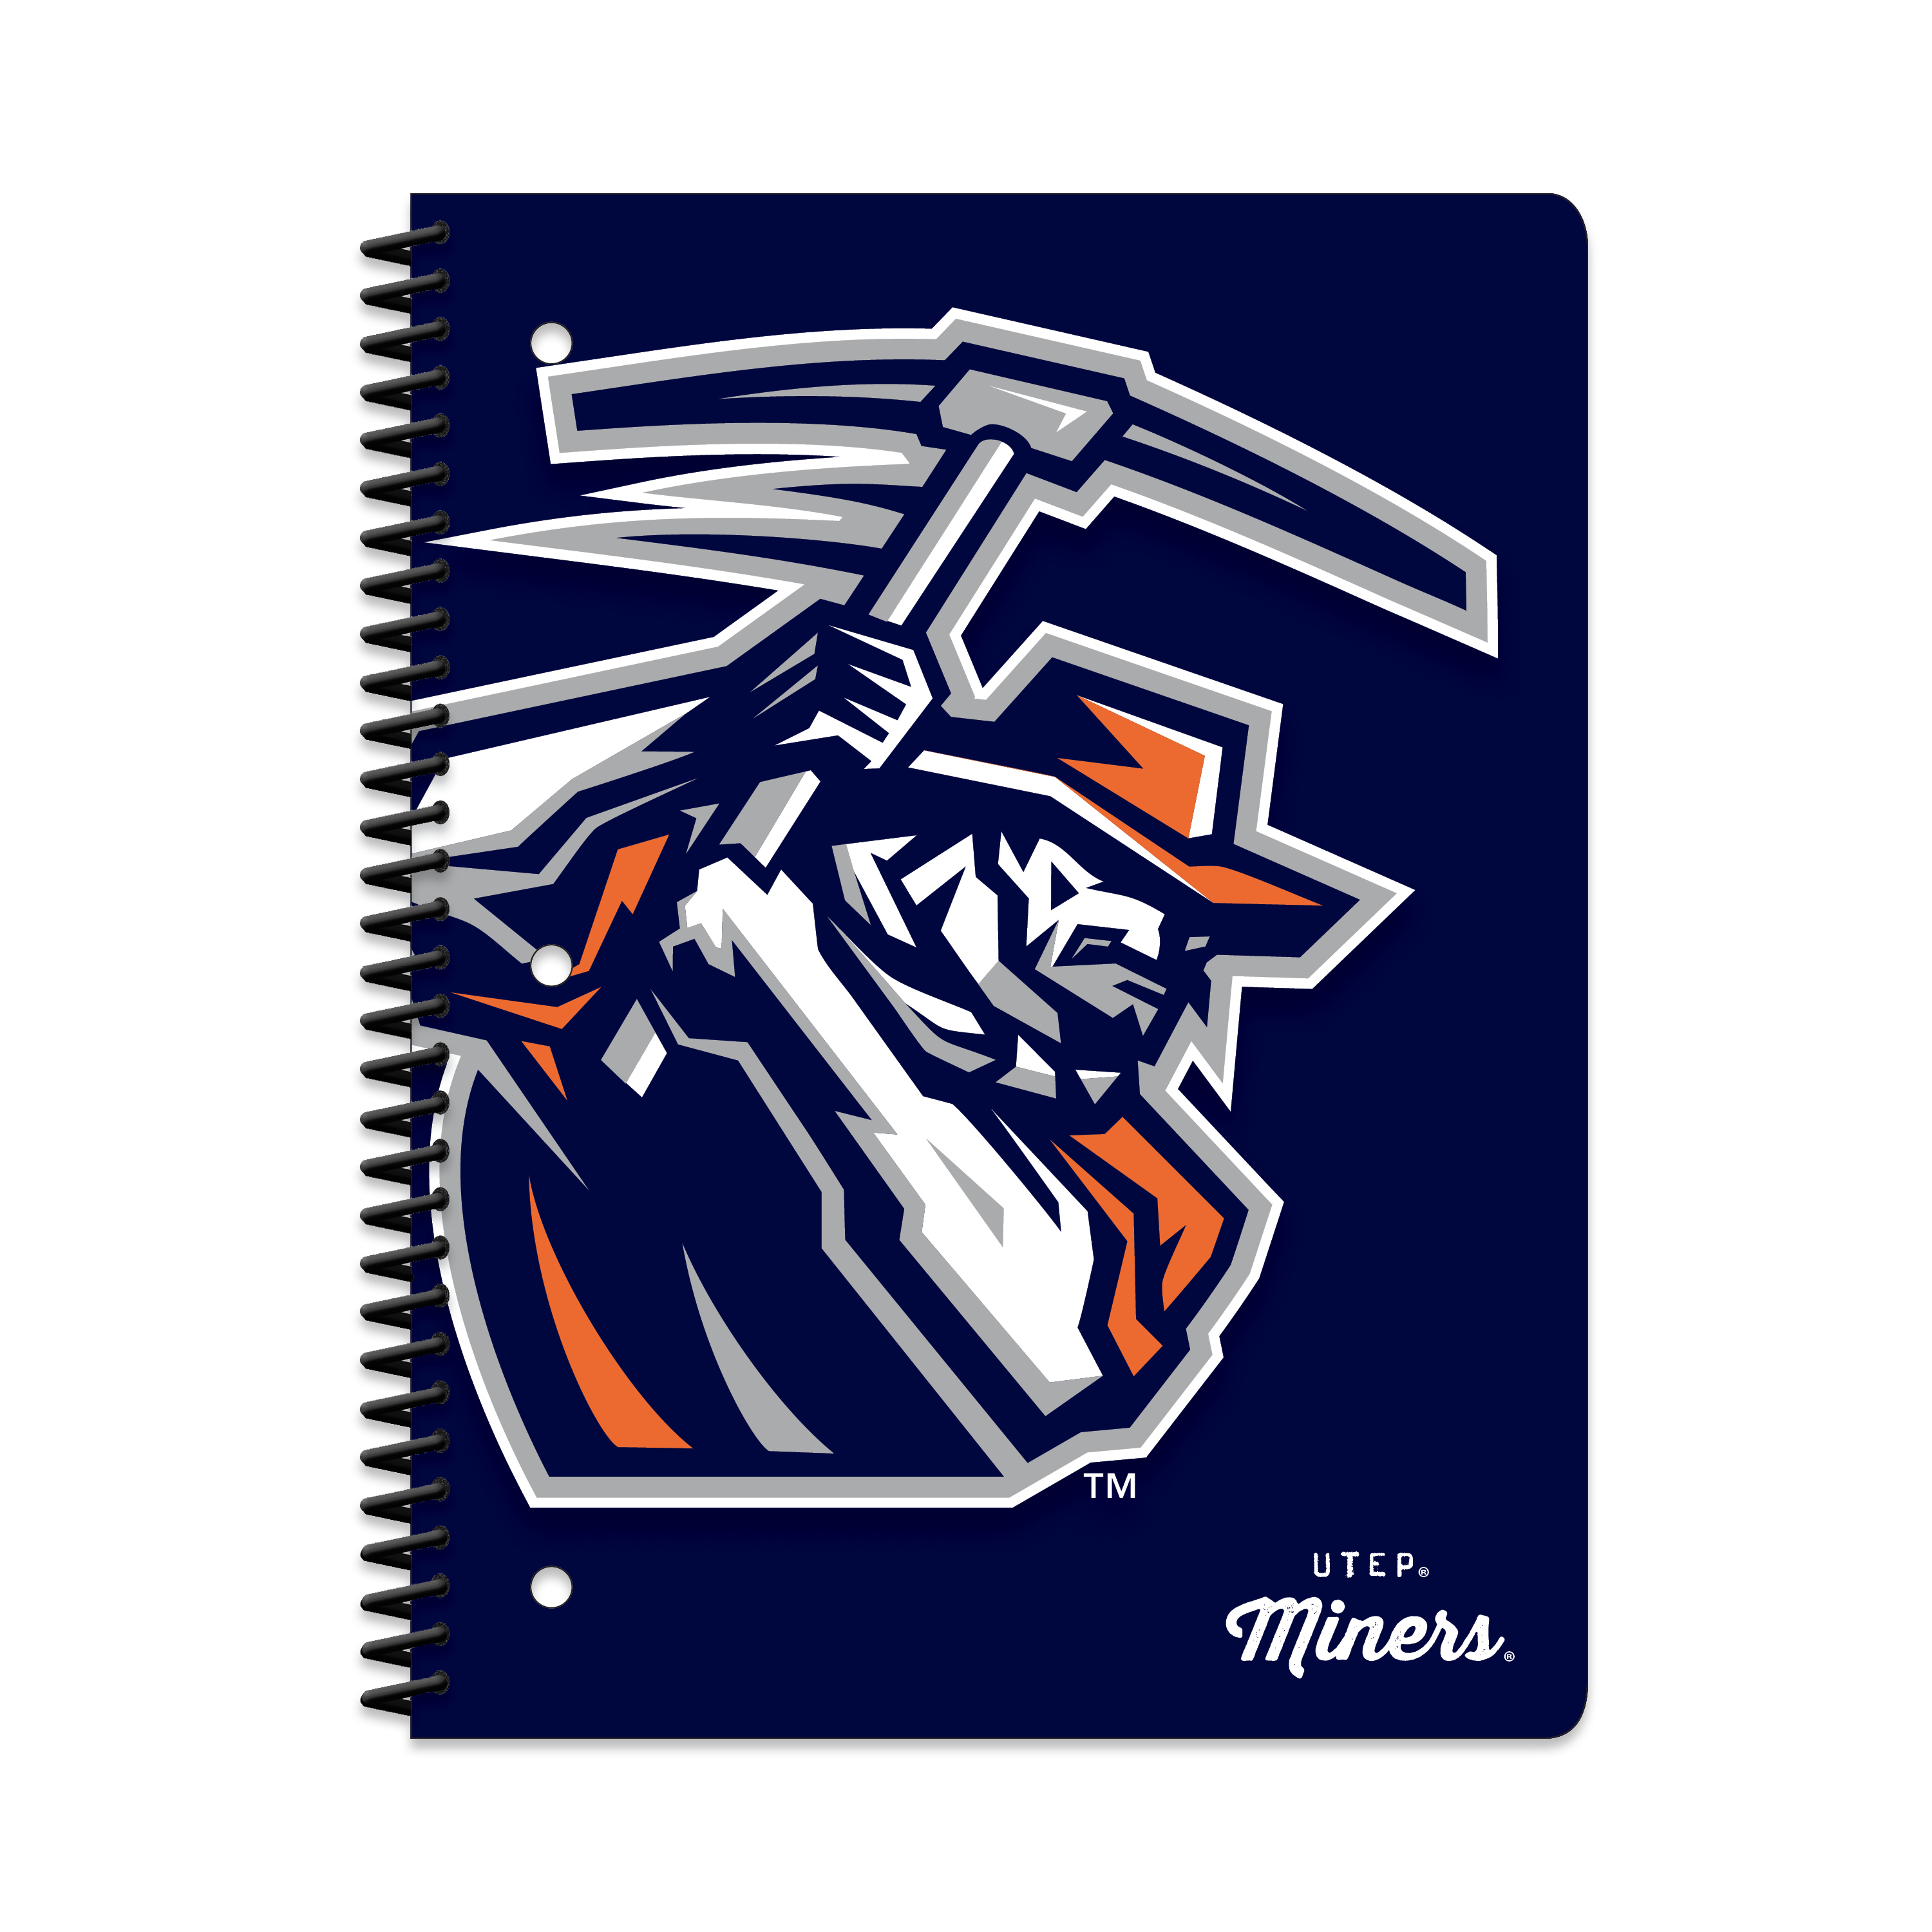 UTEP MINERS CLASSIC 1-SUBJECT NOTEBOOK